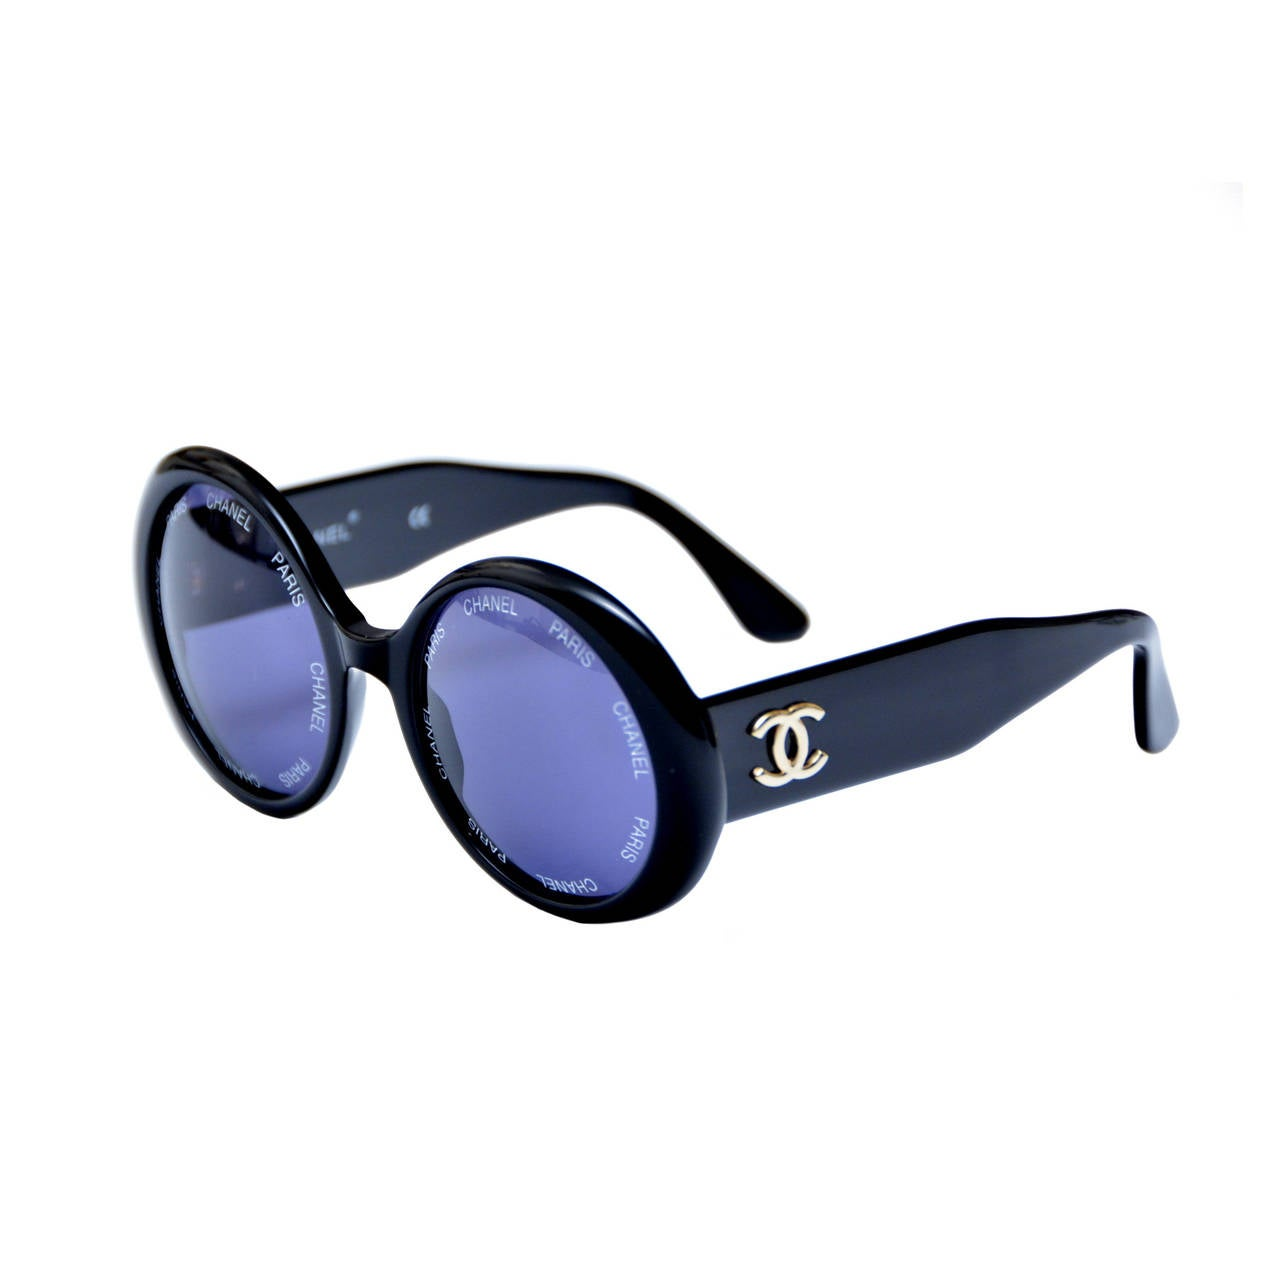 Sunglasses Chanel  chanel vintage rare chanel paris sunglasses as seen on rihana